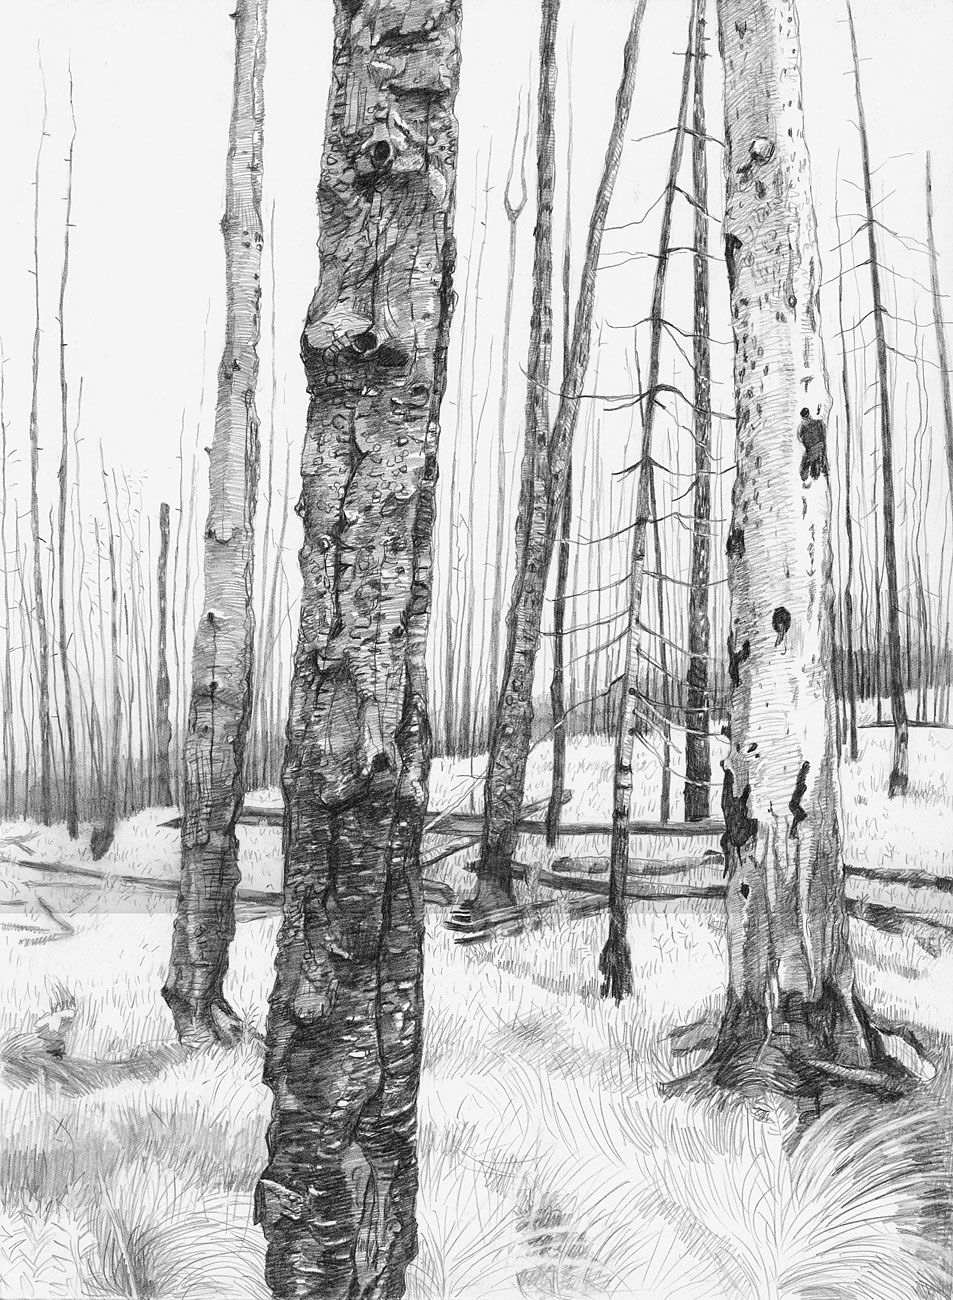 Burn Forest, 2006. Graphite on paper. Amy Talluto ...